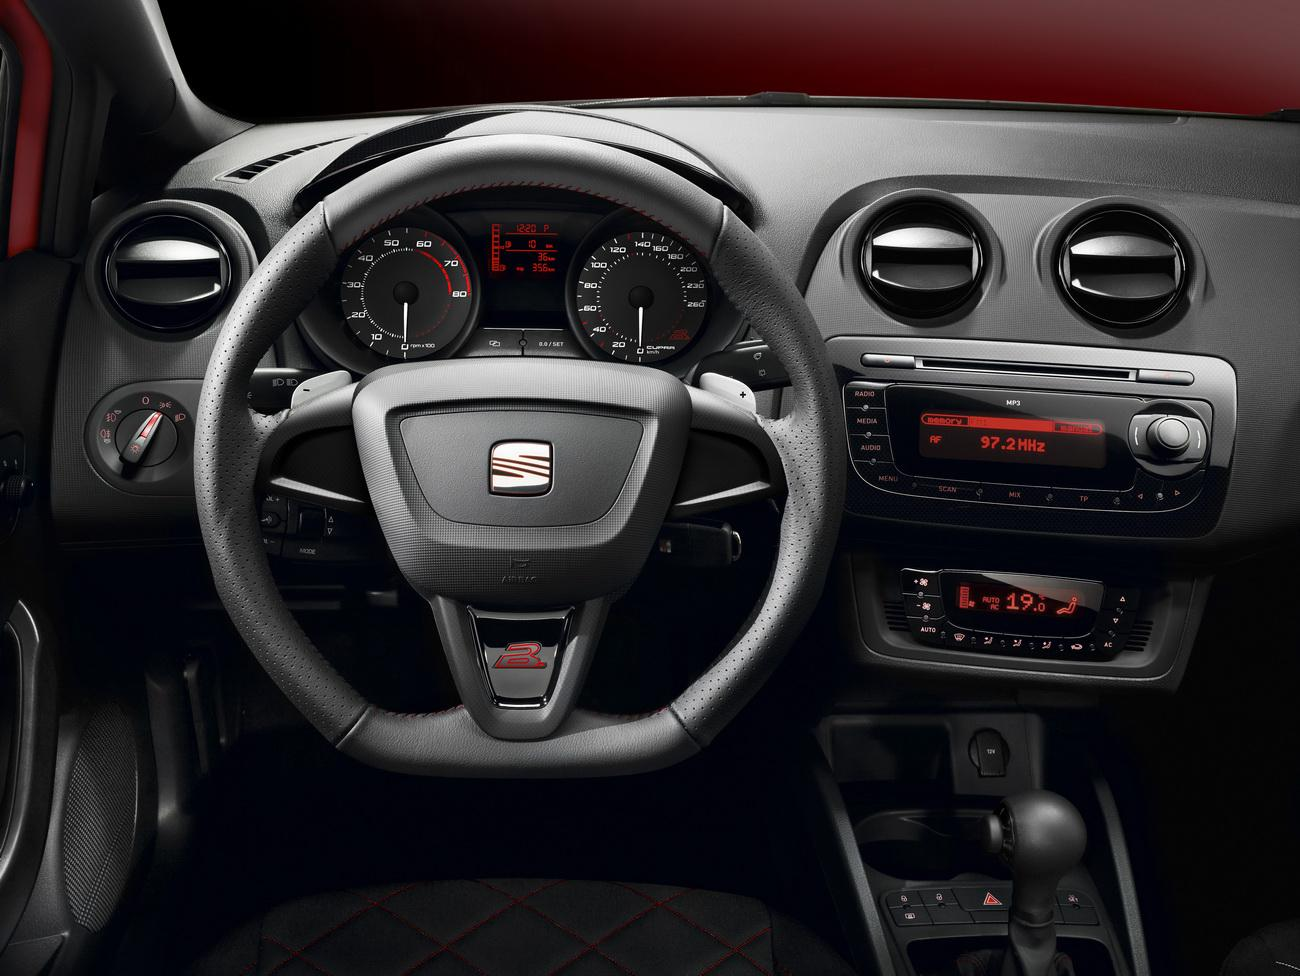 seat ibiza bocanegra interior img 7 it s your auto world